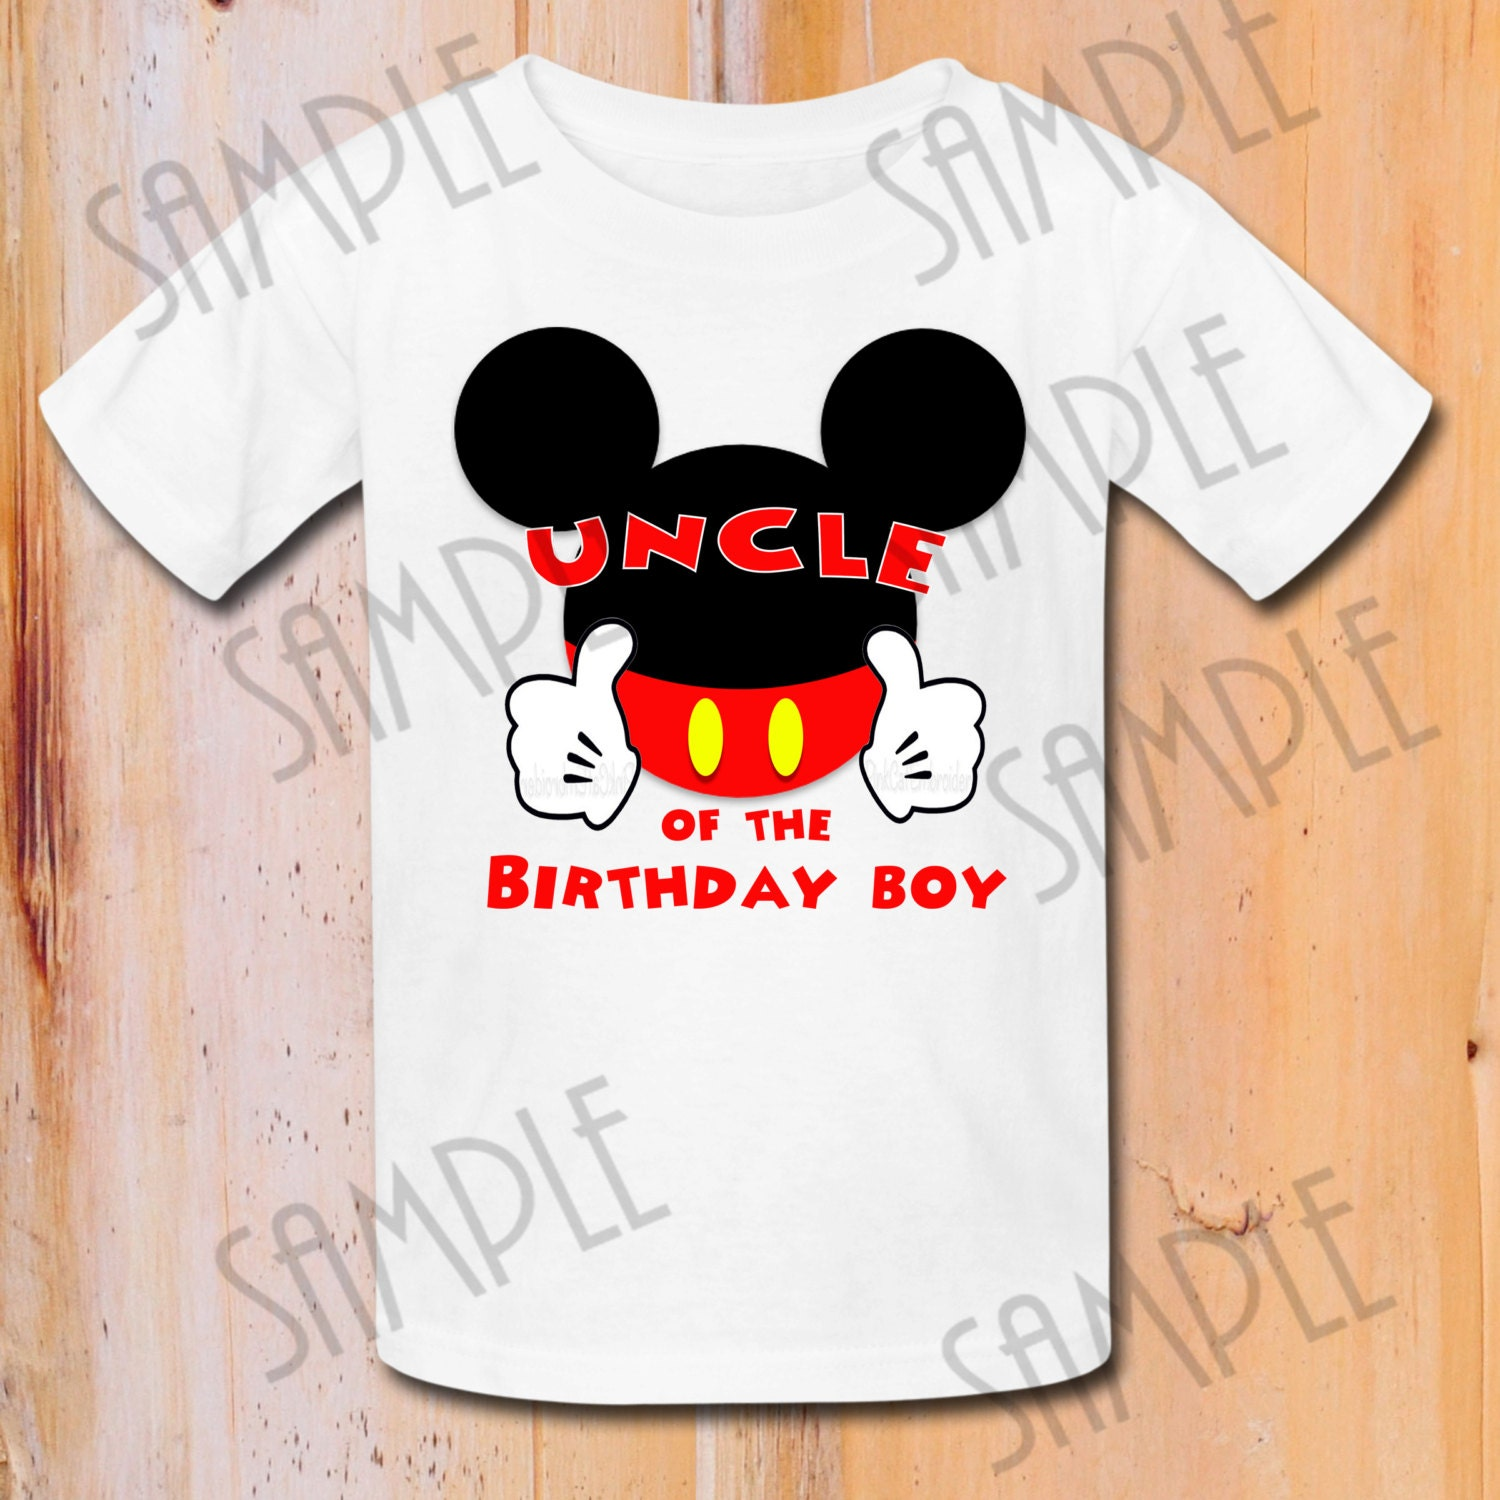 Personalized Birthday Shirts Mickey Mouse